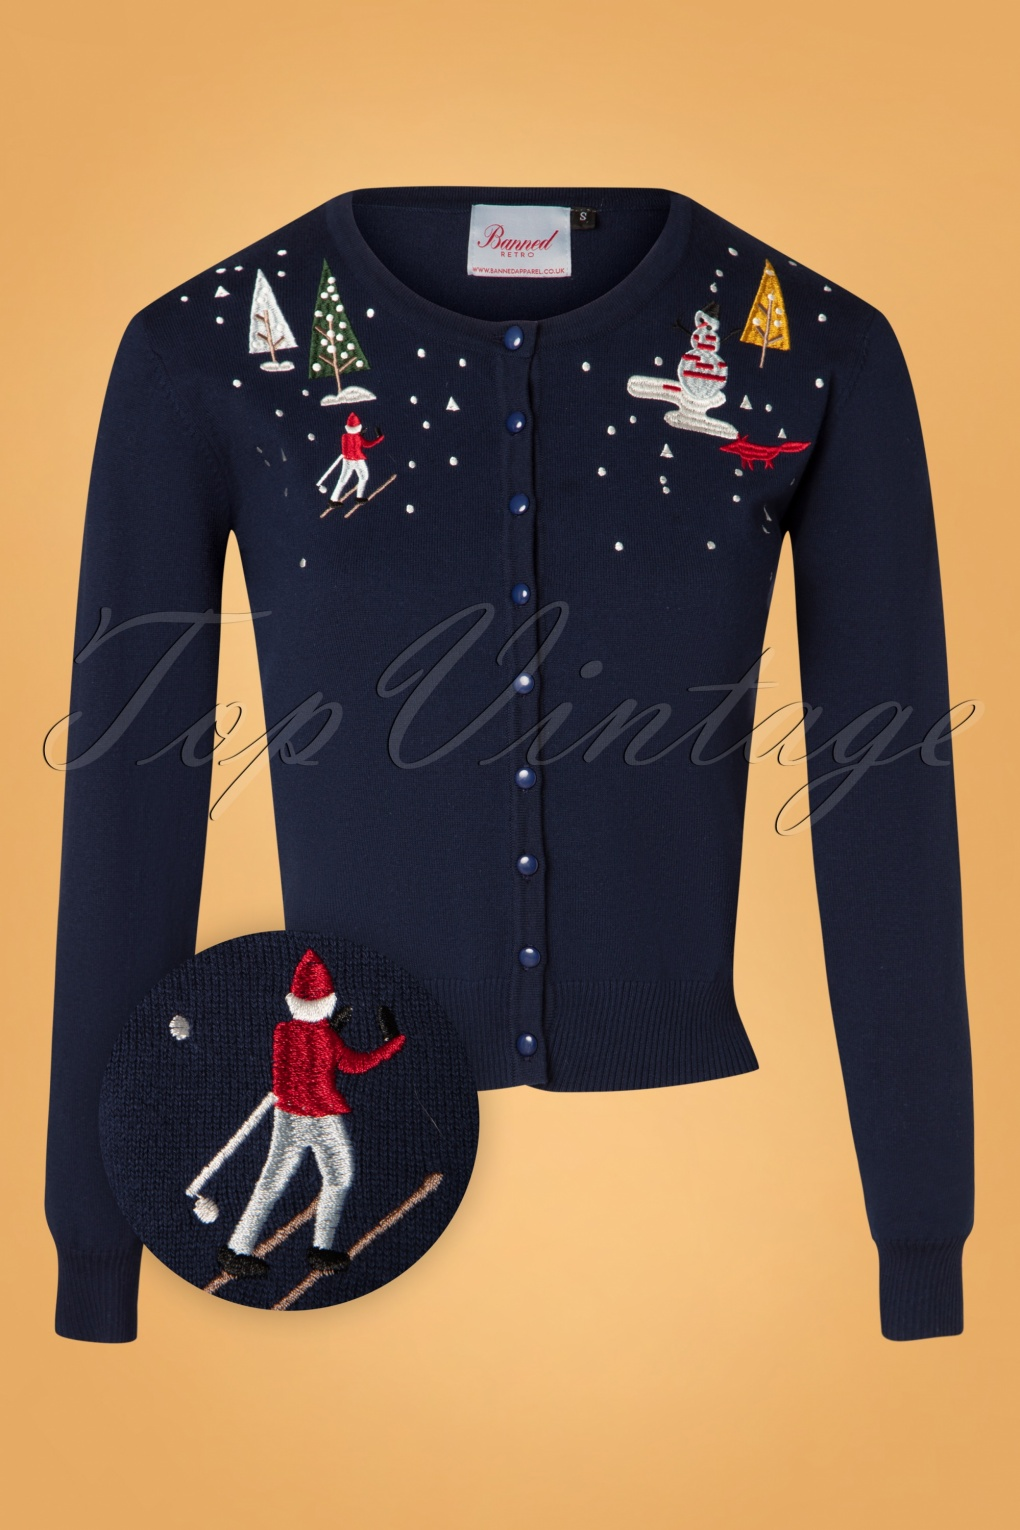 Vintage Sweaters, Retro Sweaters & Cardigan 50s Christmas Town Cardigan in Navy £34.06 AT vintagedancer.com